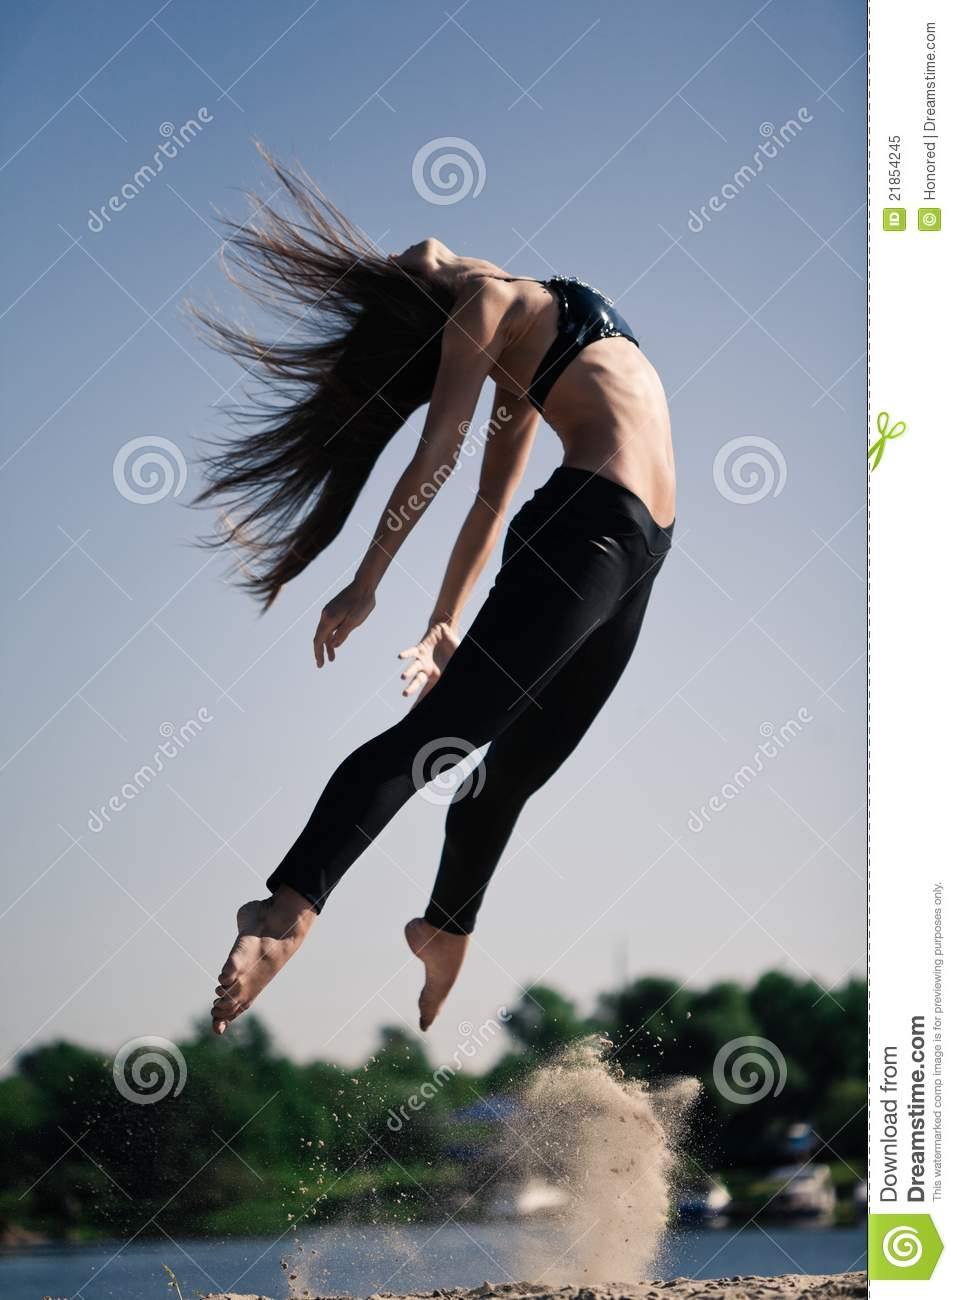 Acrobatic girls images 47